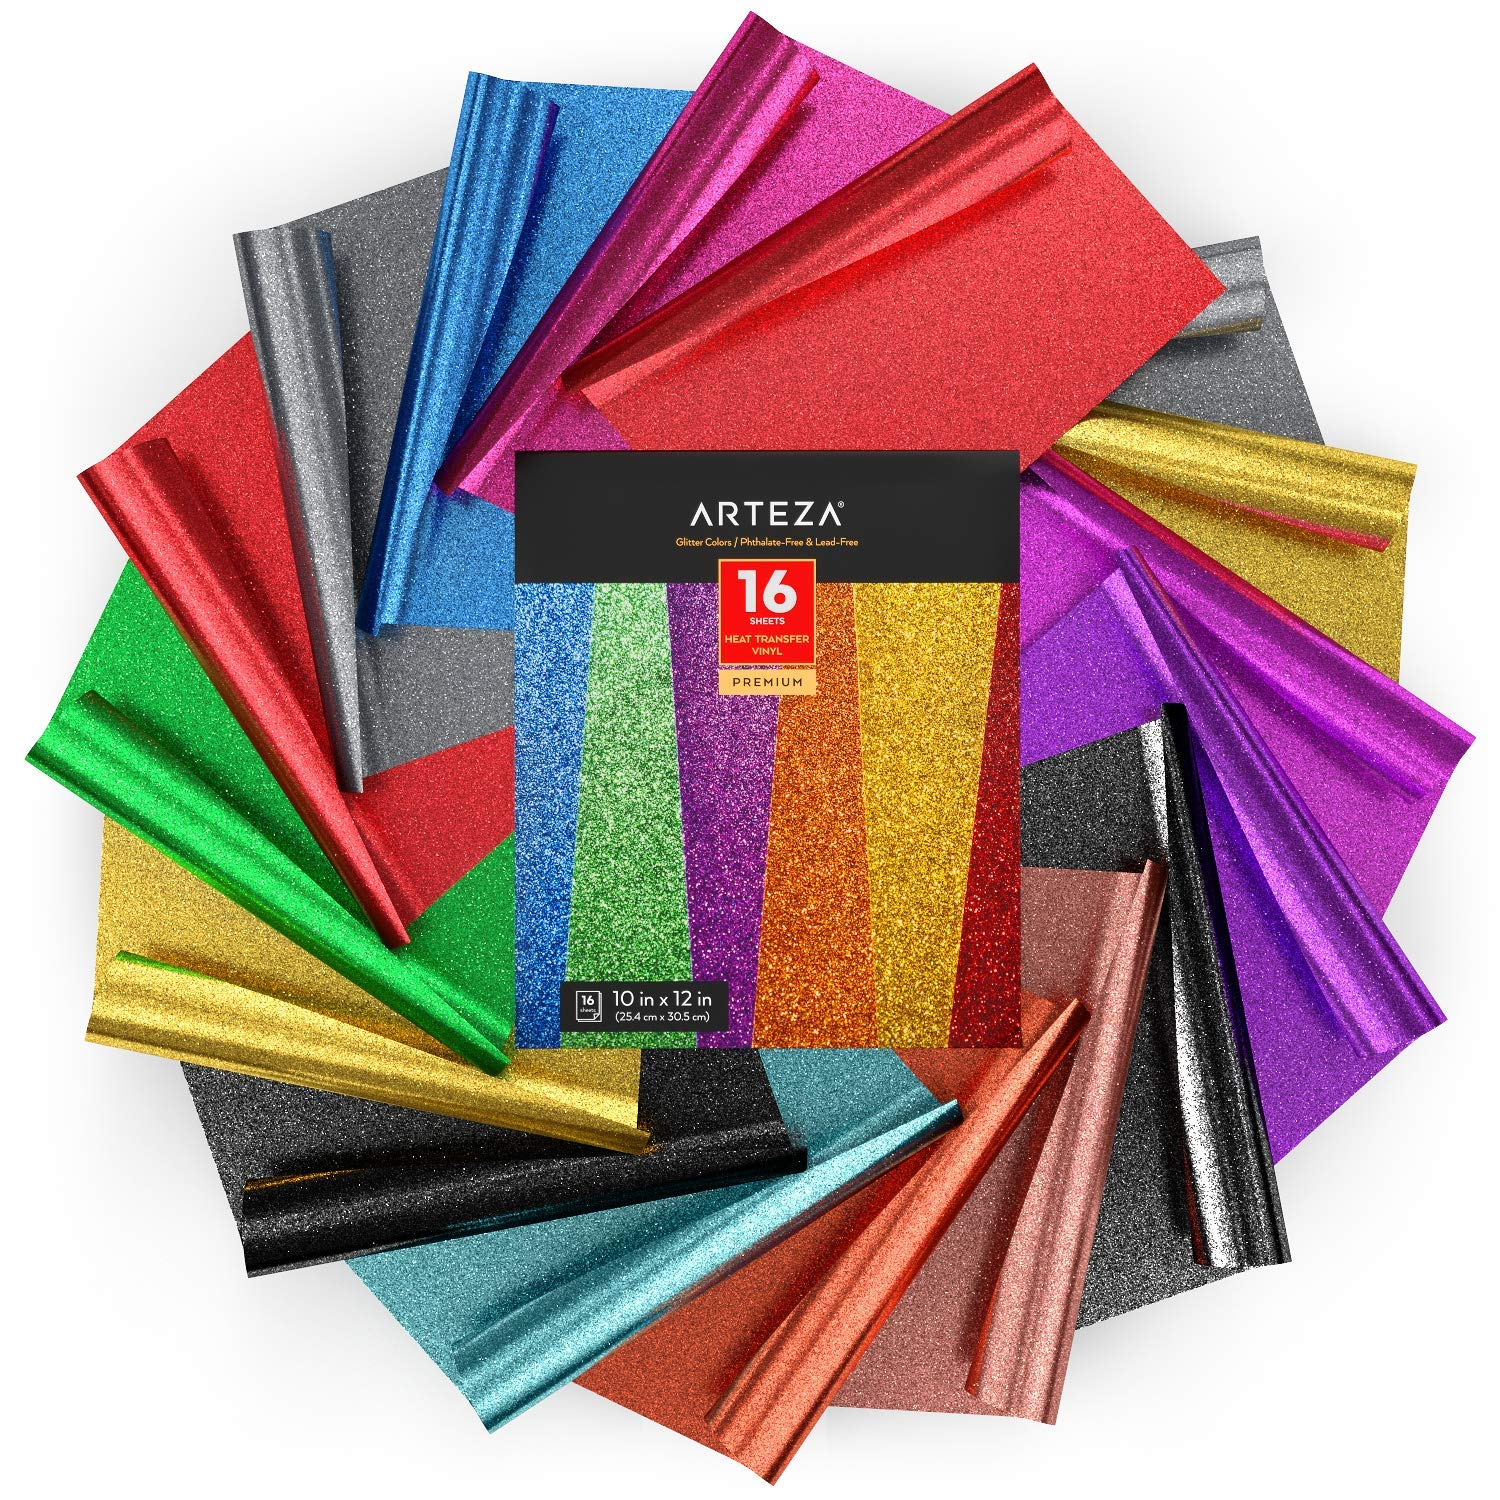 Arteza Heat Transfer Vinyl Set, 16 Multi-Color Glitter HTV Sheets, 10x12 Inches Each, Sturdy & Easy to Weed, Safe & Nontoxic, Use with Any Craft Cutting Machine, Boxed by ARTEZA